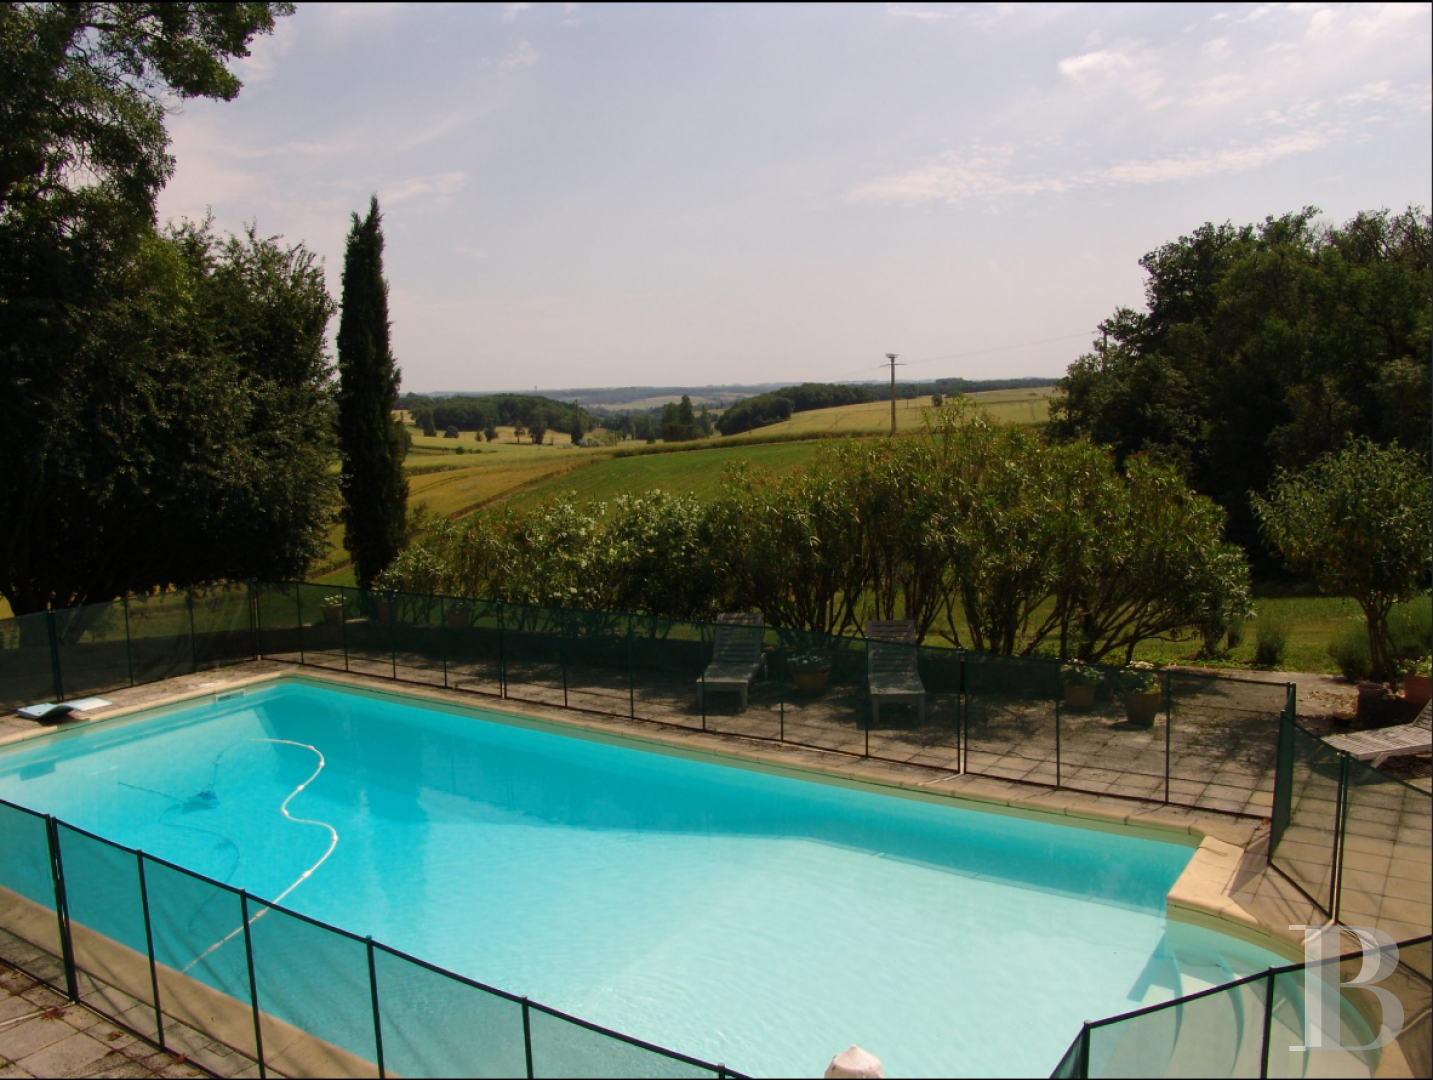 property for sale France midi pyrenees residences farms - 13 zoom